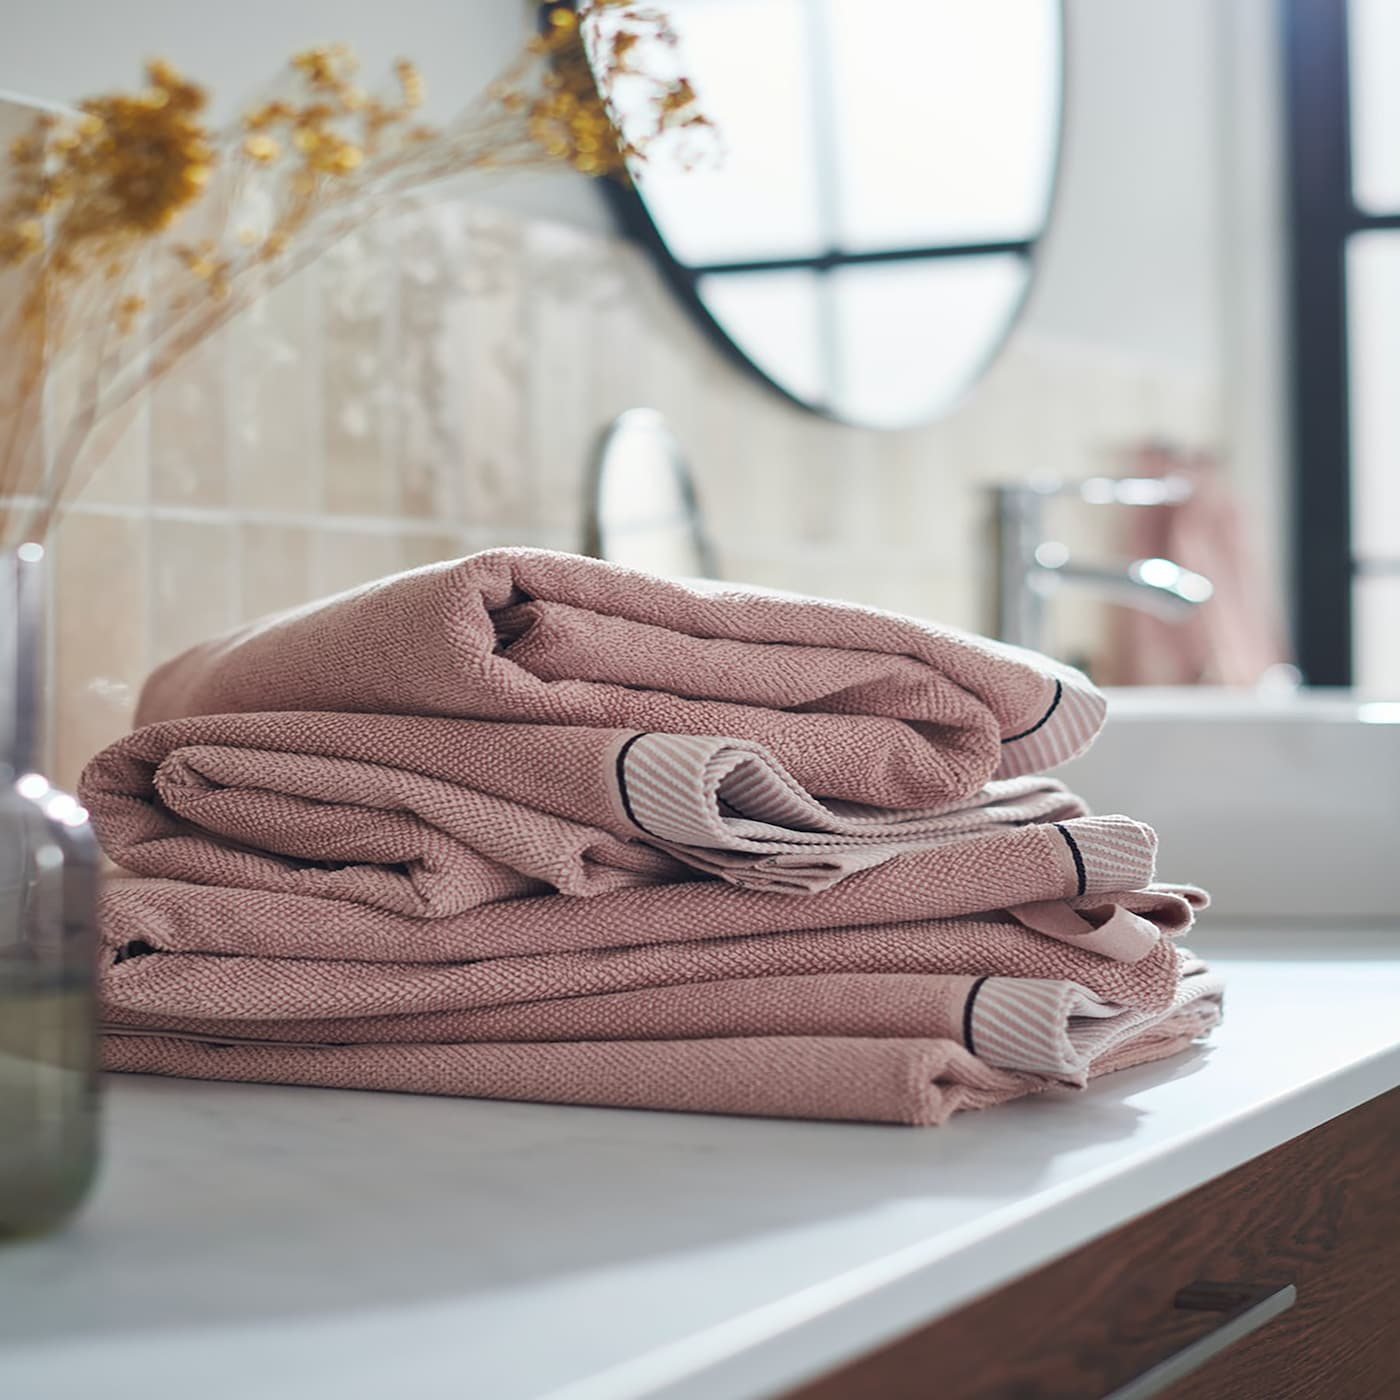 A pile of VIKFJÄRD hand towels in light pink stacked on a bathroom countertop.